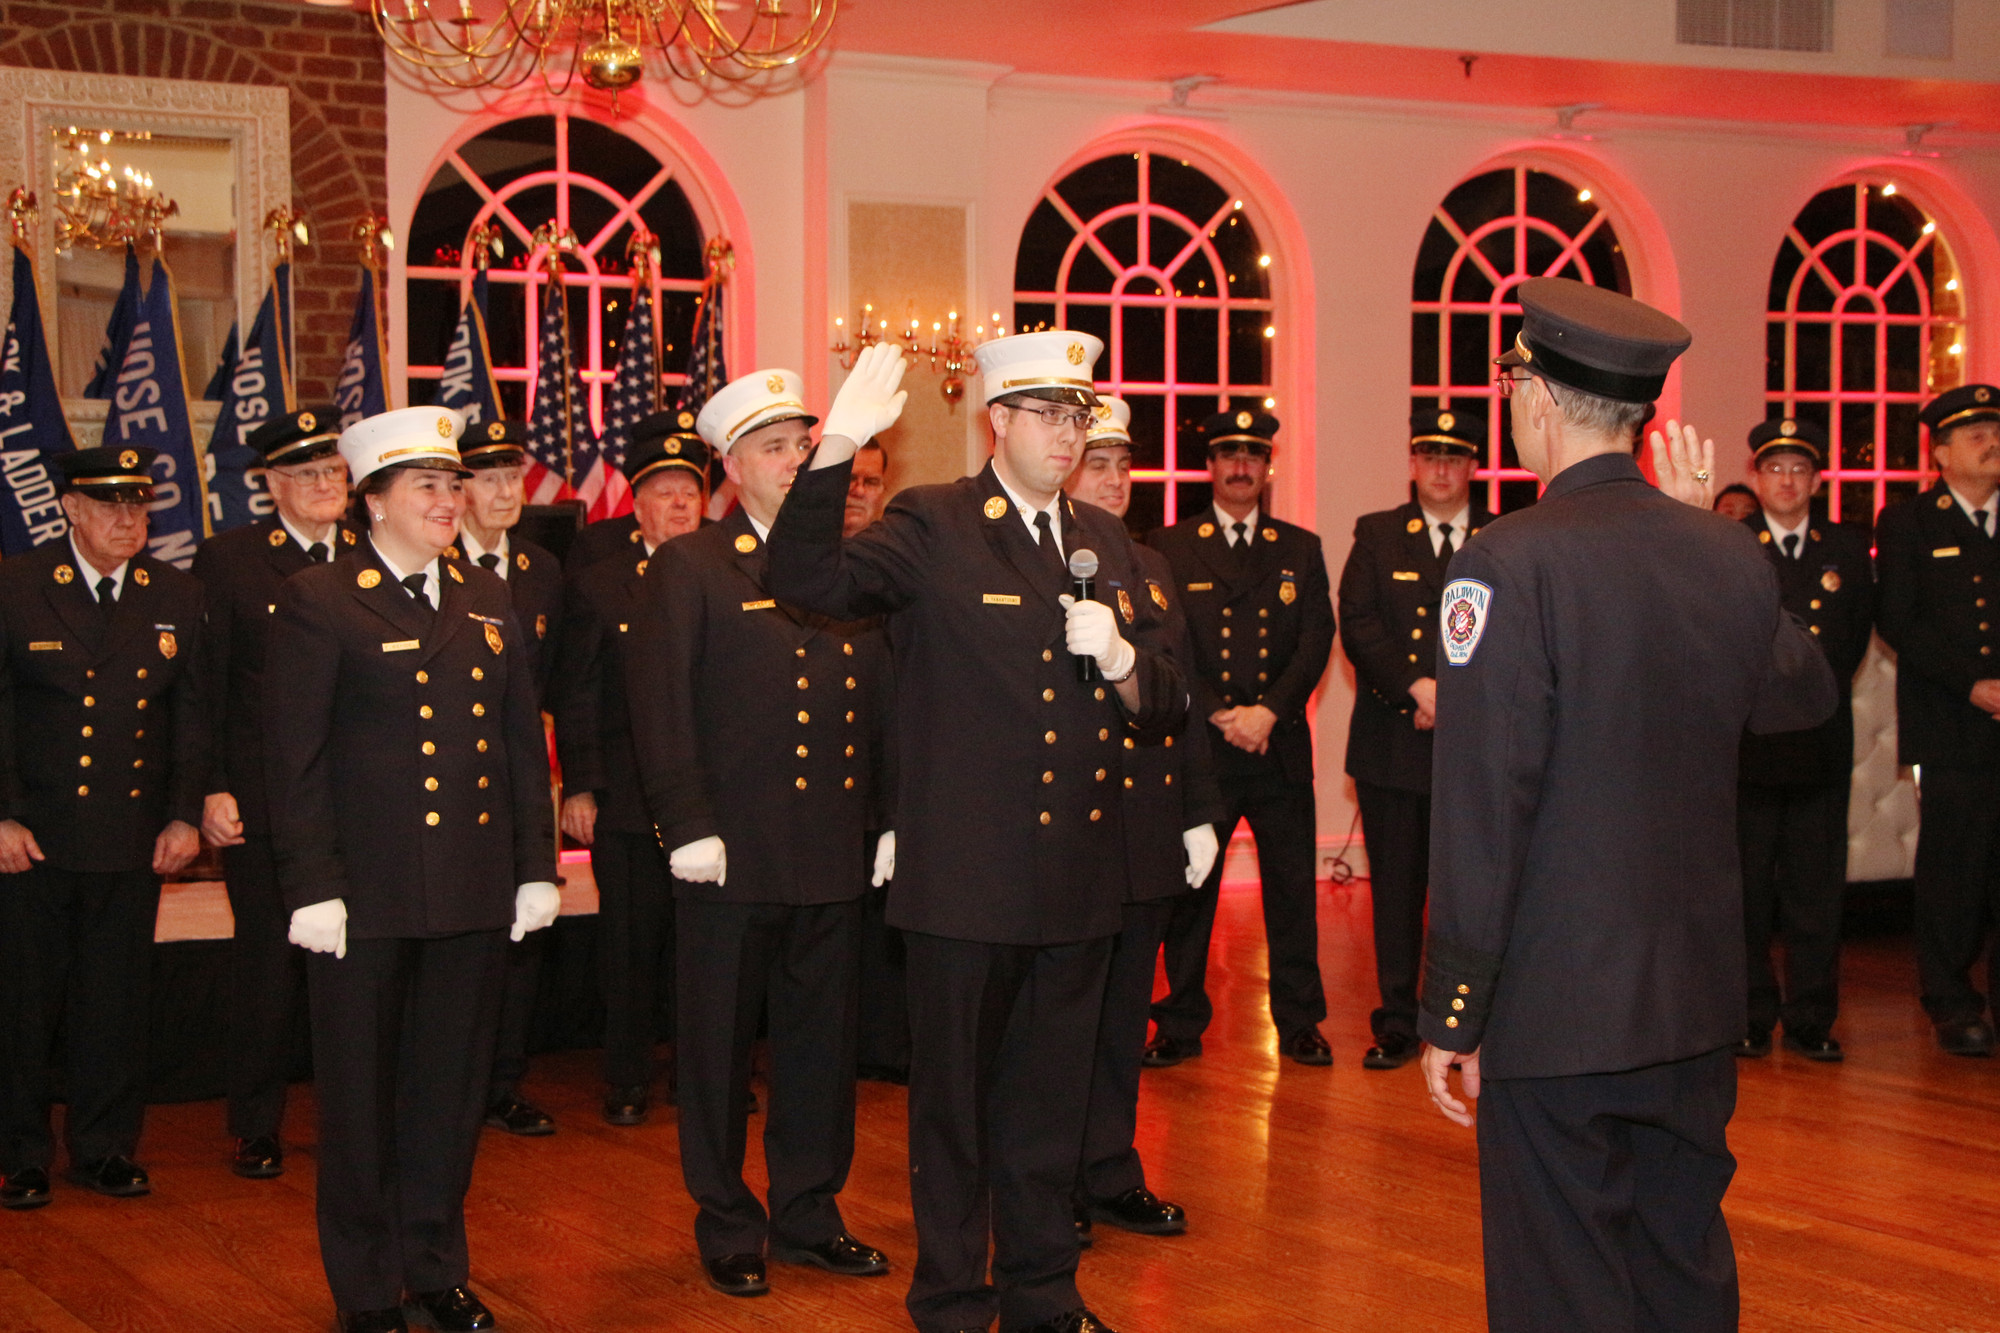 Ex-chief Paul A. Yanantuono, right, swore in his son Craig as chief of the Baldwin Fire Department on April 5.